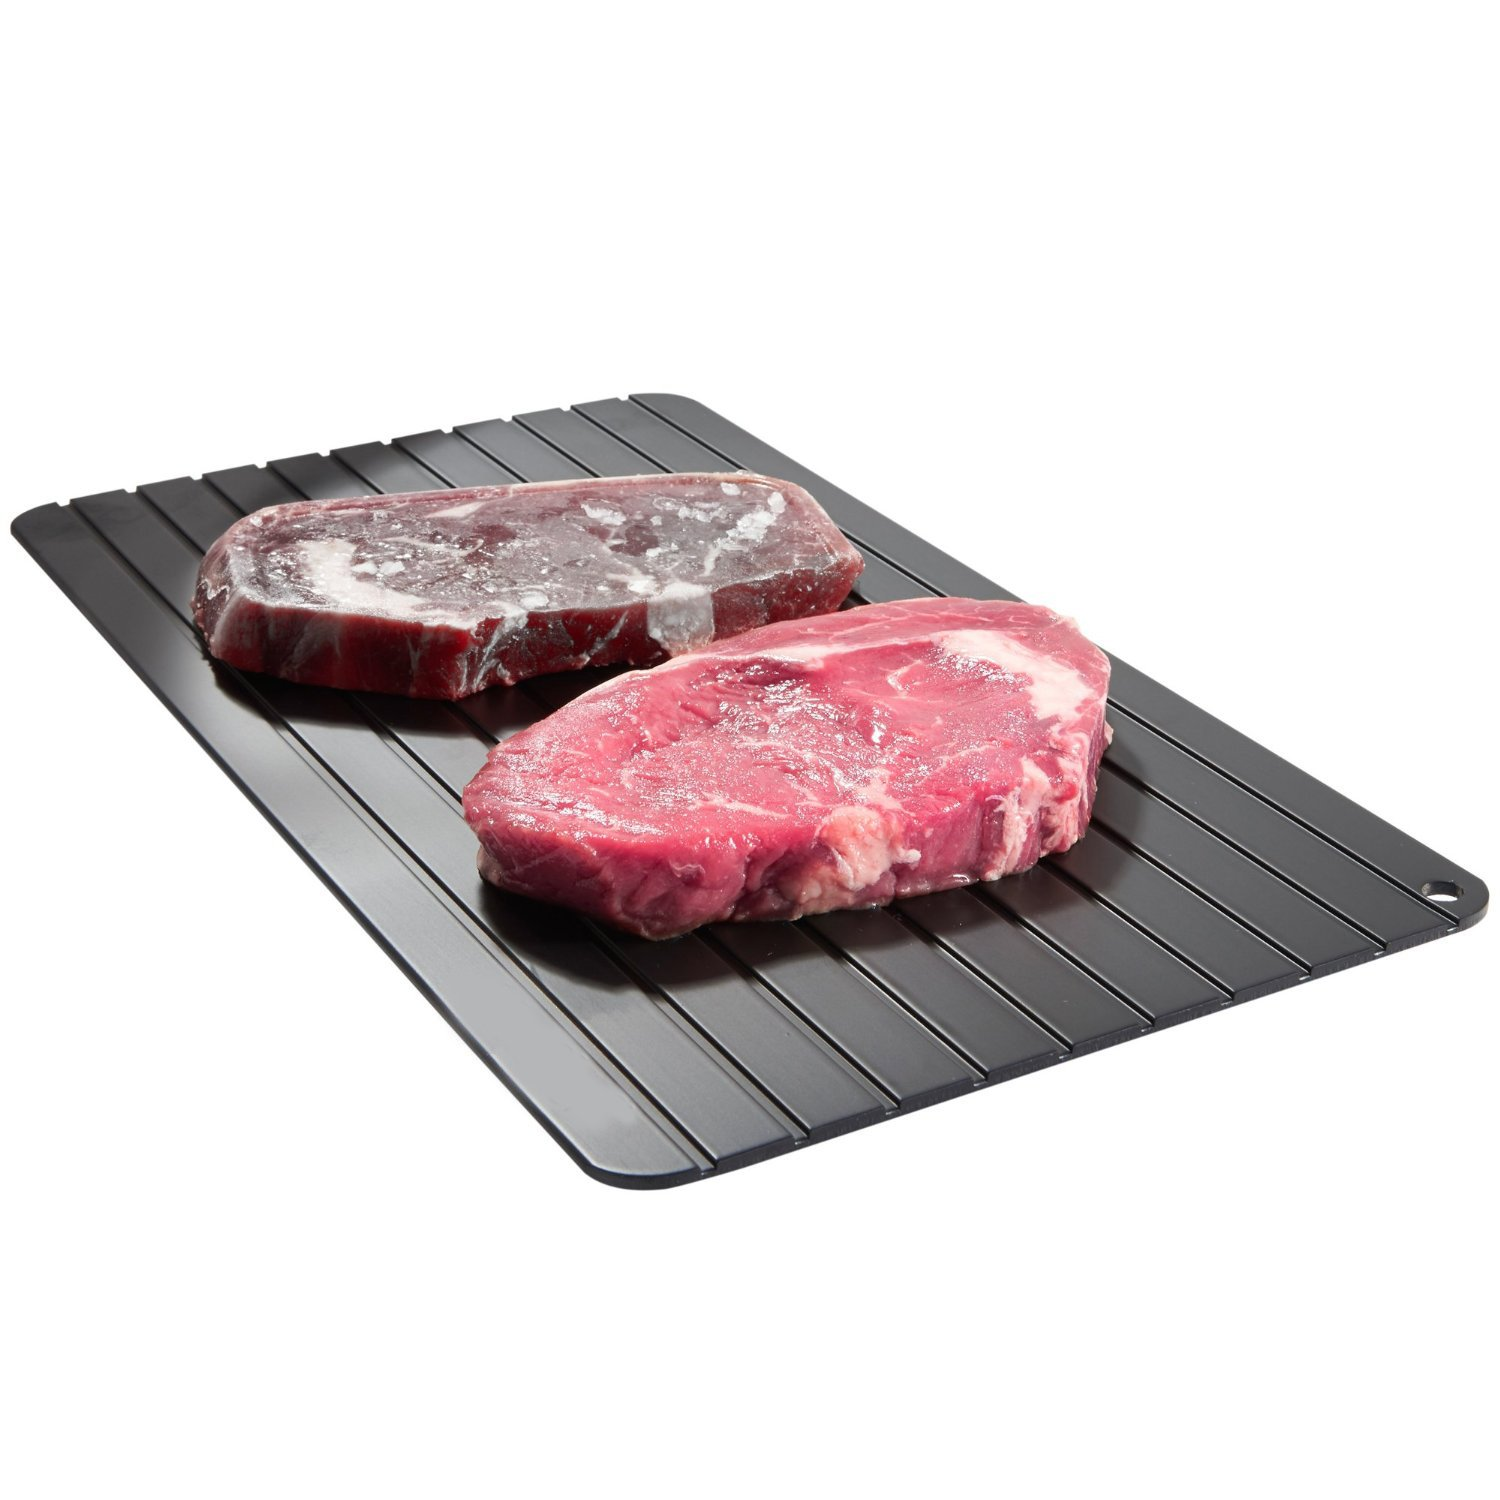 Qualiclub Gourmet Trends Quick & EZ Defrosting Tray Kitchenware Quick Thawing Tray Material Meets FDA Standards (3552052mm, Black)